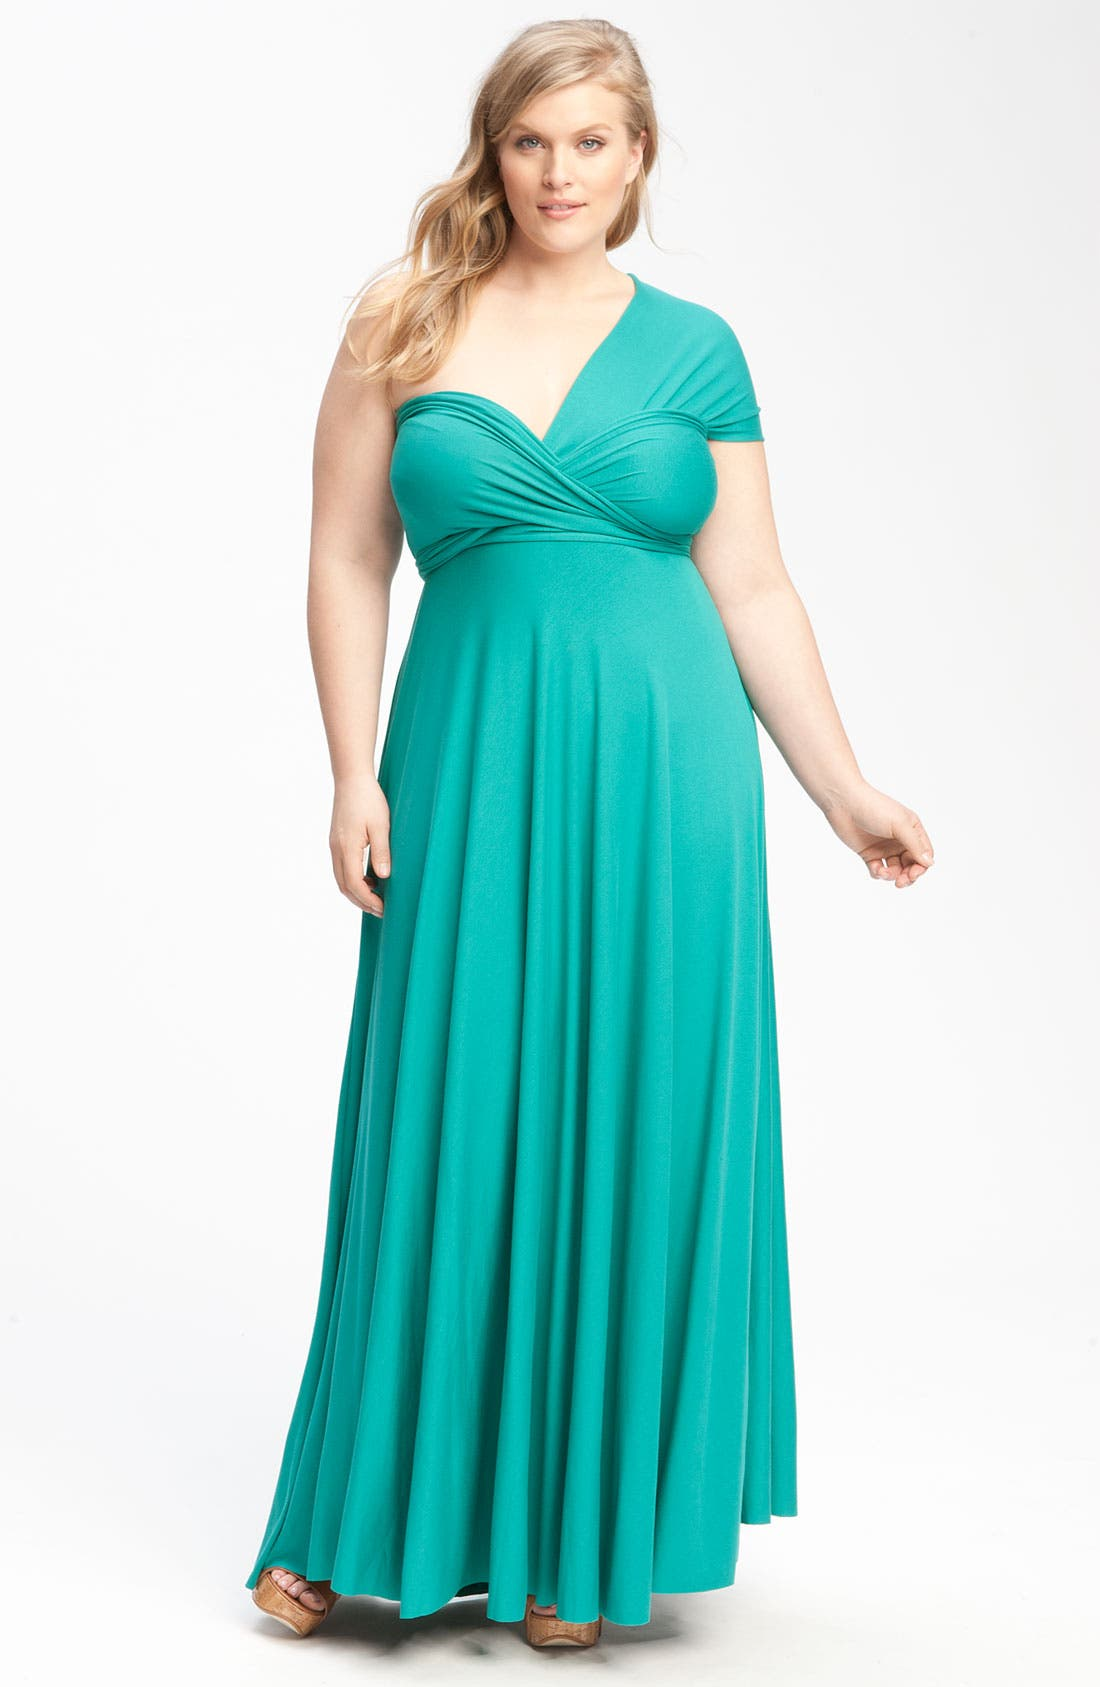 Alternate Image 1 Selected - Monif C 'Marilyn' Convertible Jersey Gown (Plus)